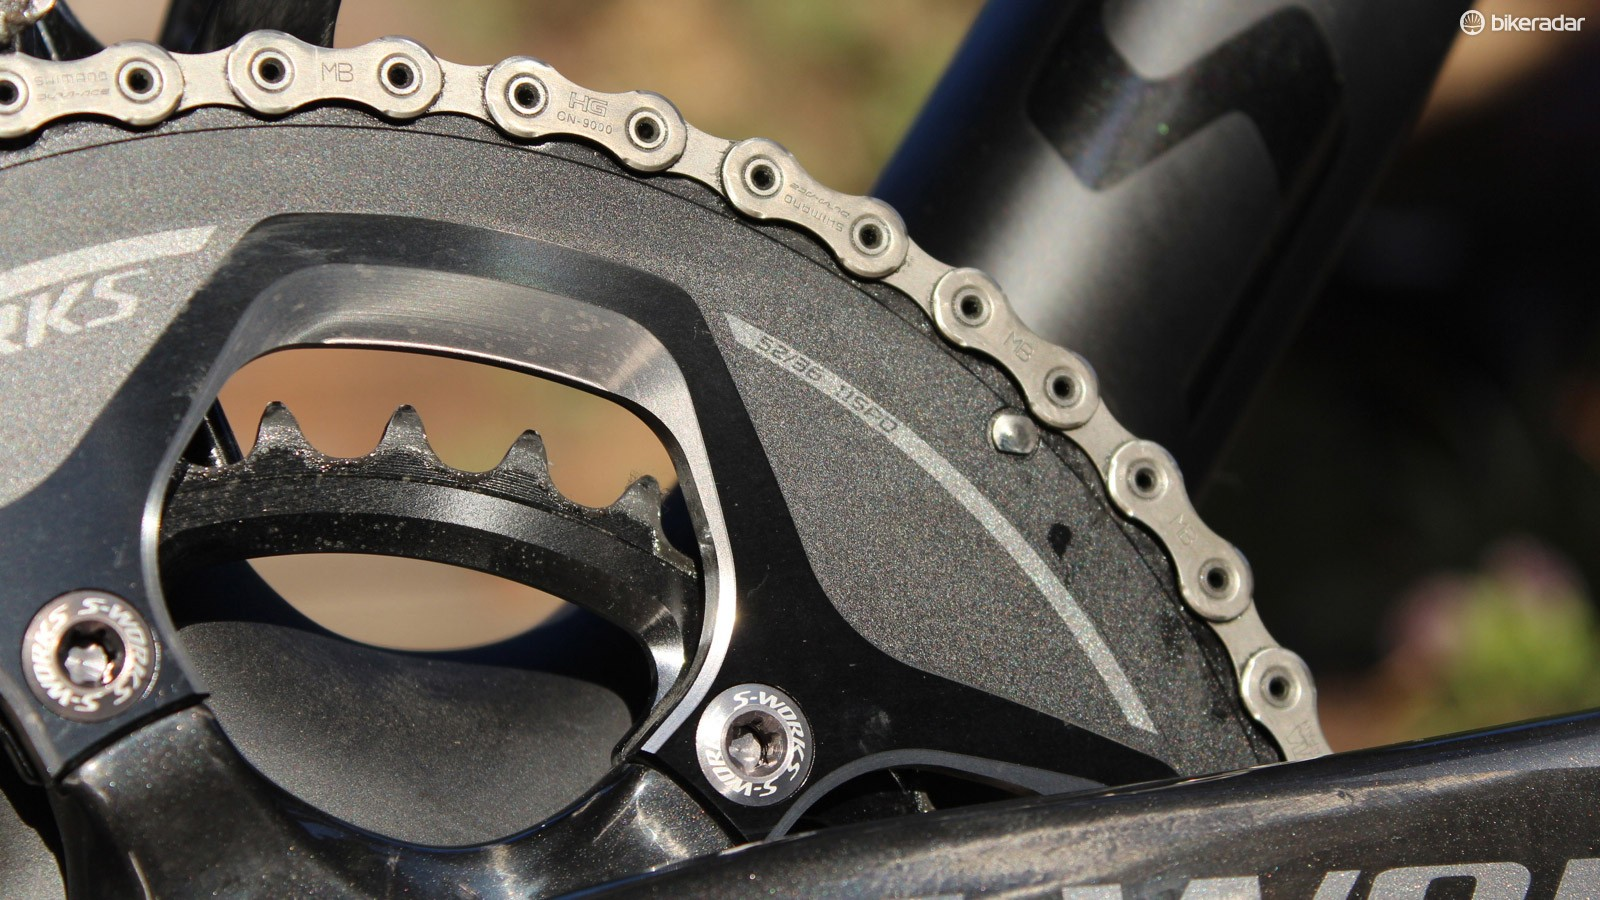 We love the 52/36 combo, but we prefer Shimano Dura-Ace rings to S-Works for stiffness and shifting